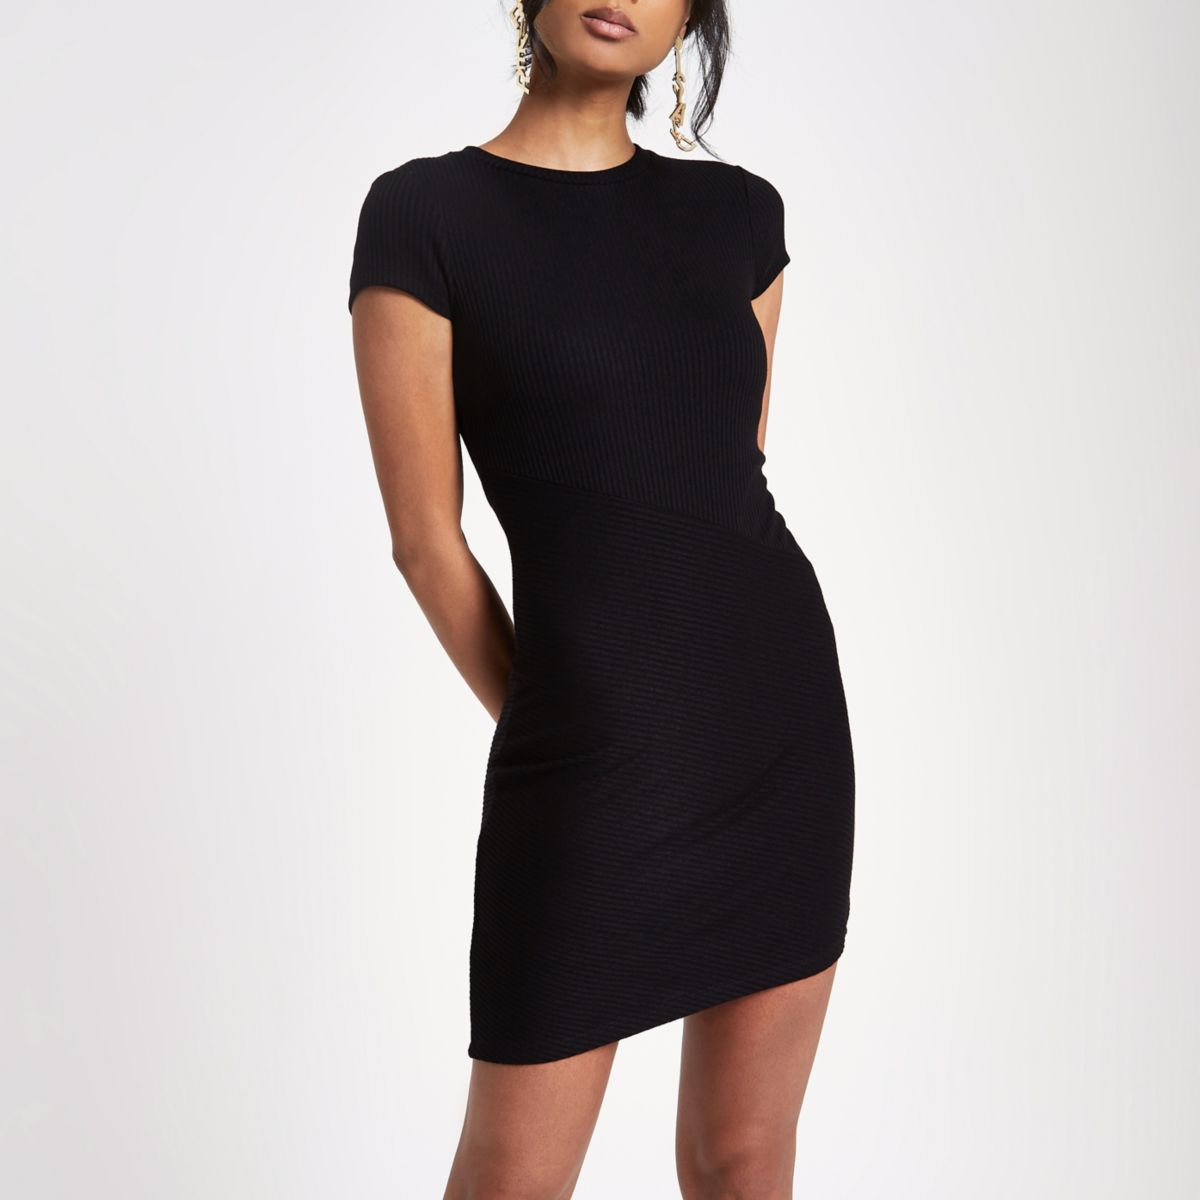 Black ribbed cap sleeve fitted dress